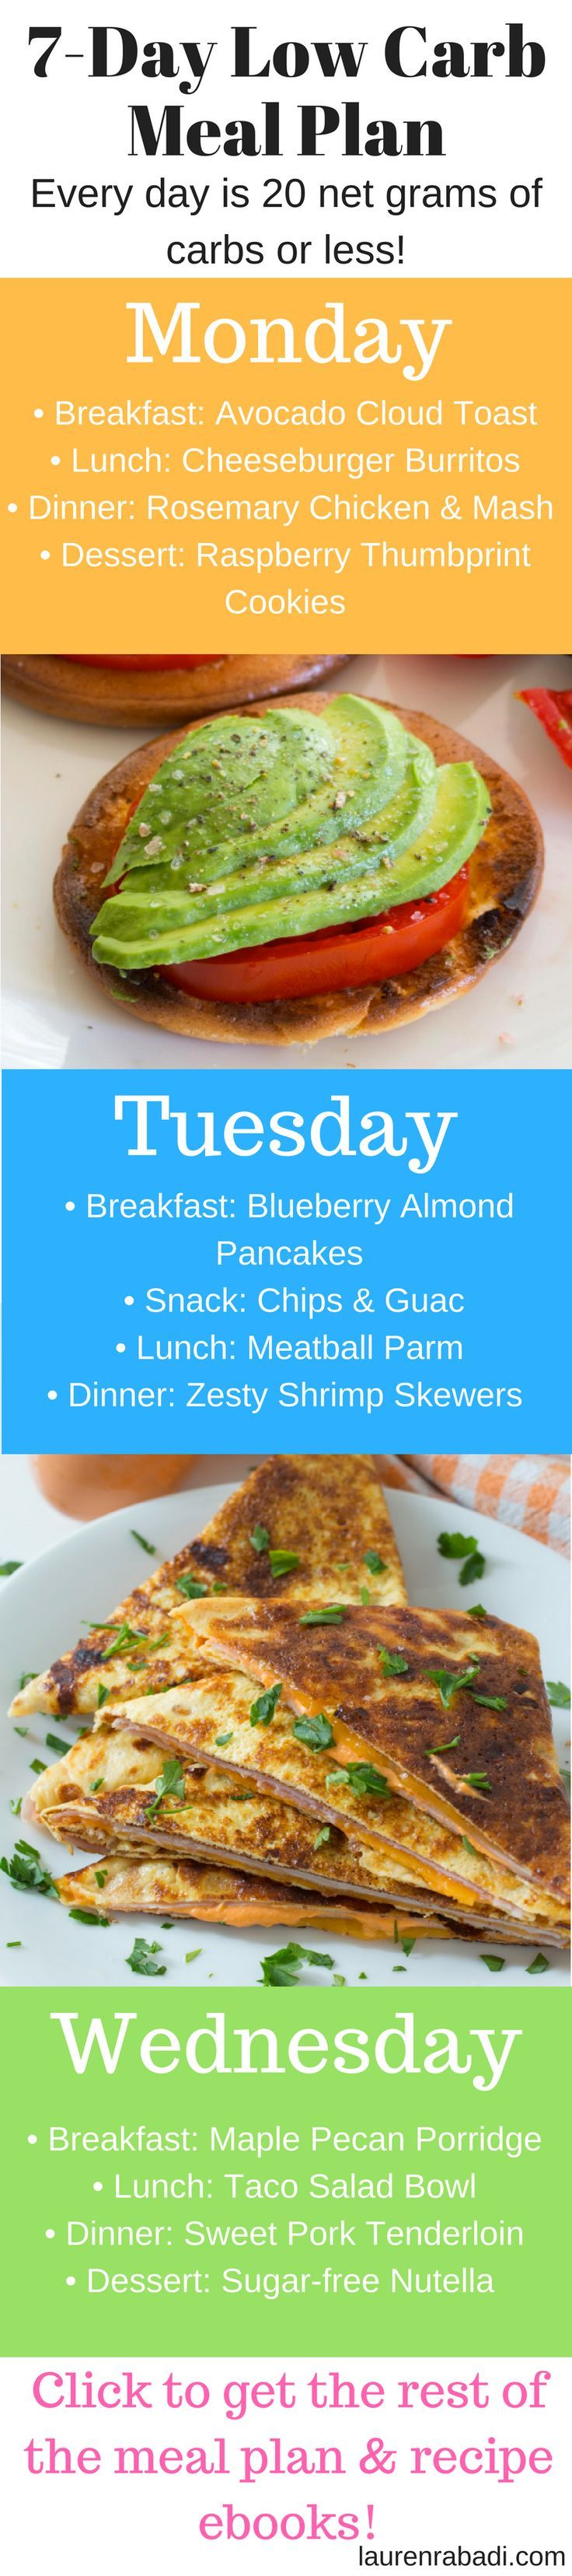 Low Carb 7 Day Meal Plan (with breakfast, lunch, dinner & dessert recipe ebooks!) #keto #lowcarb #whole30 #paleo #loseweightfast #loseweighteasy